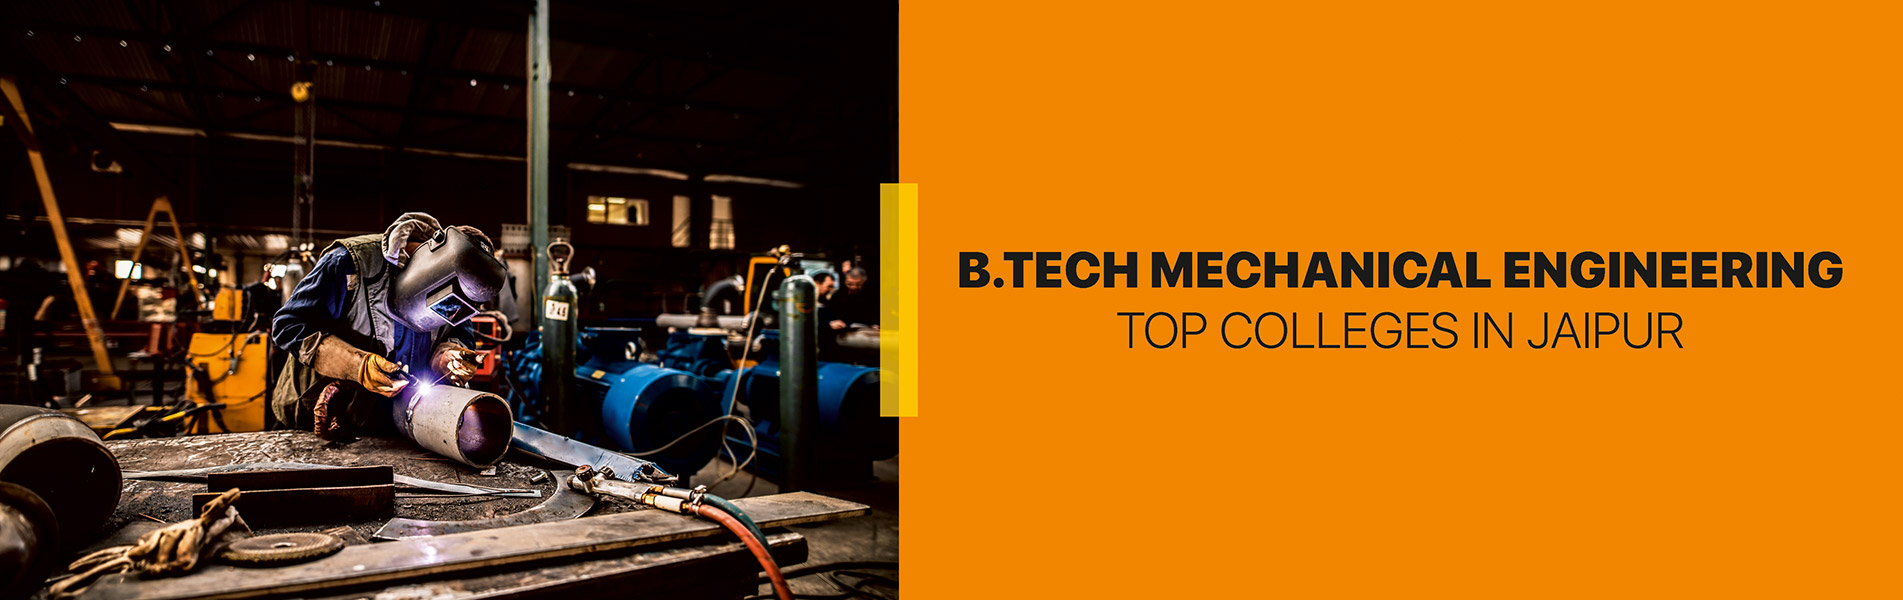 BTech Mechanical Engineering, Top Colleges in Jaipur